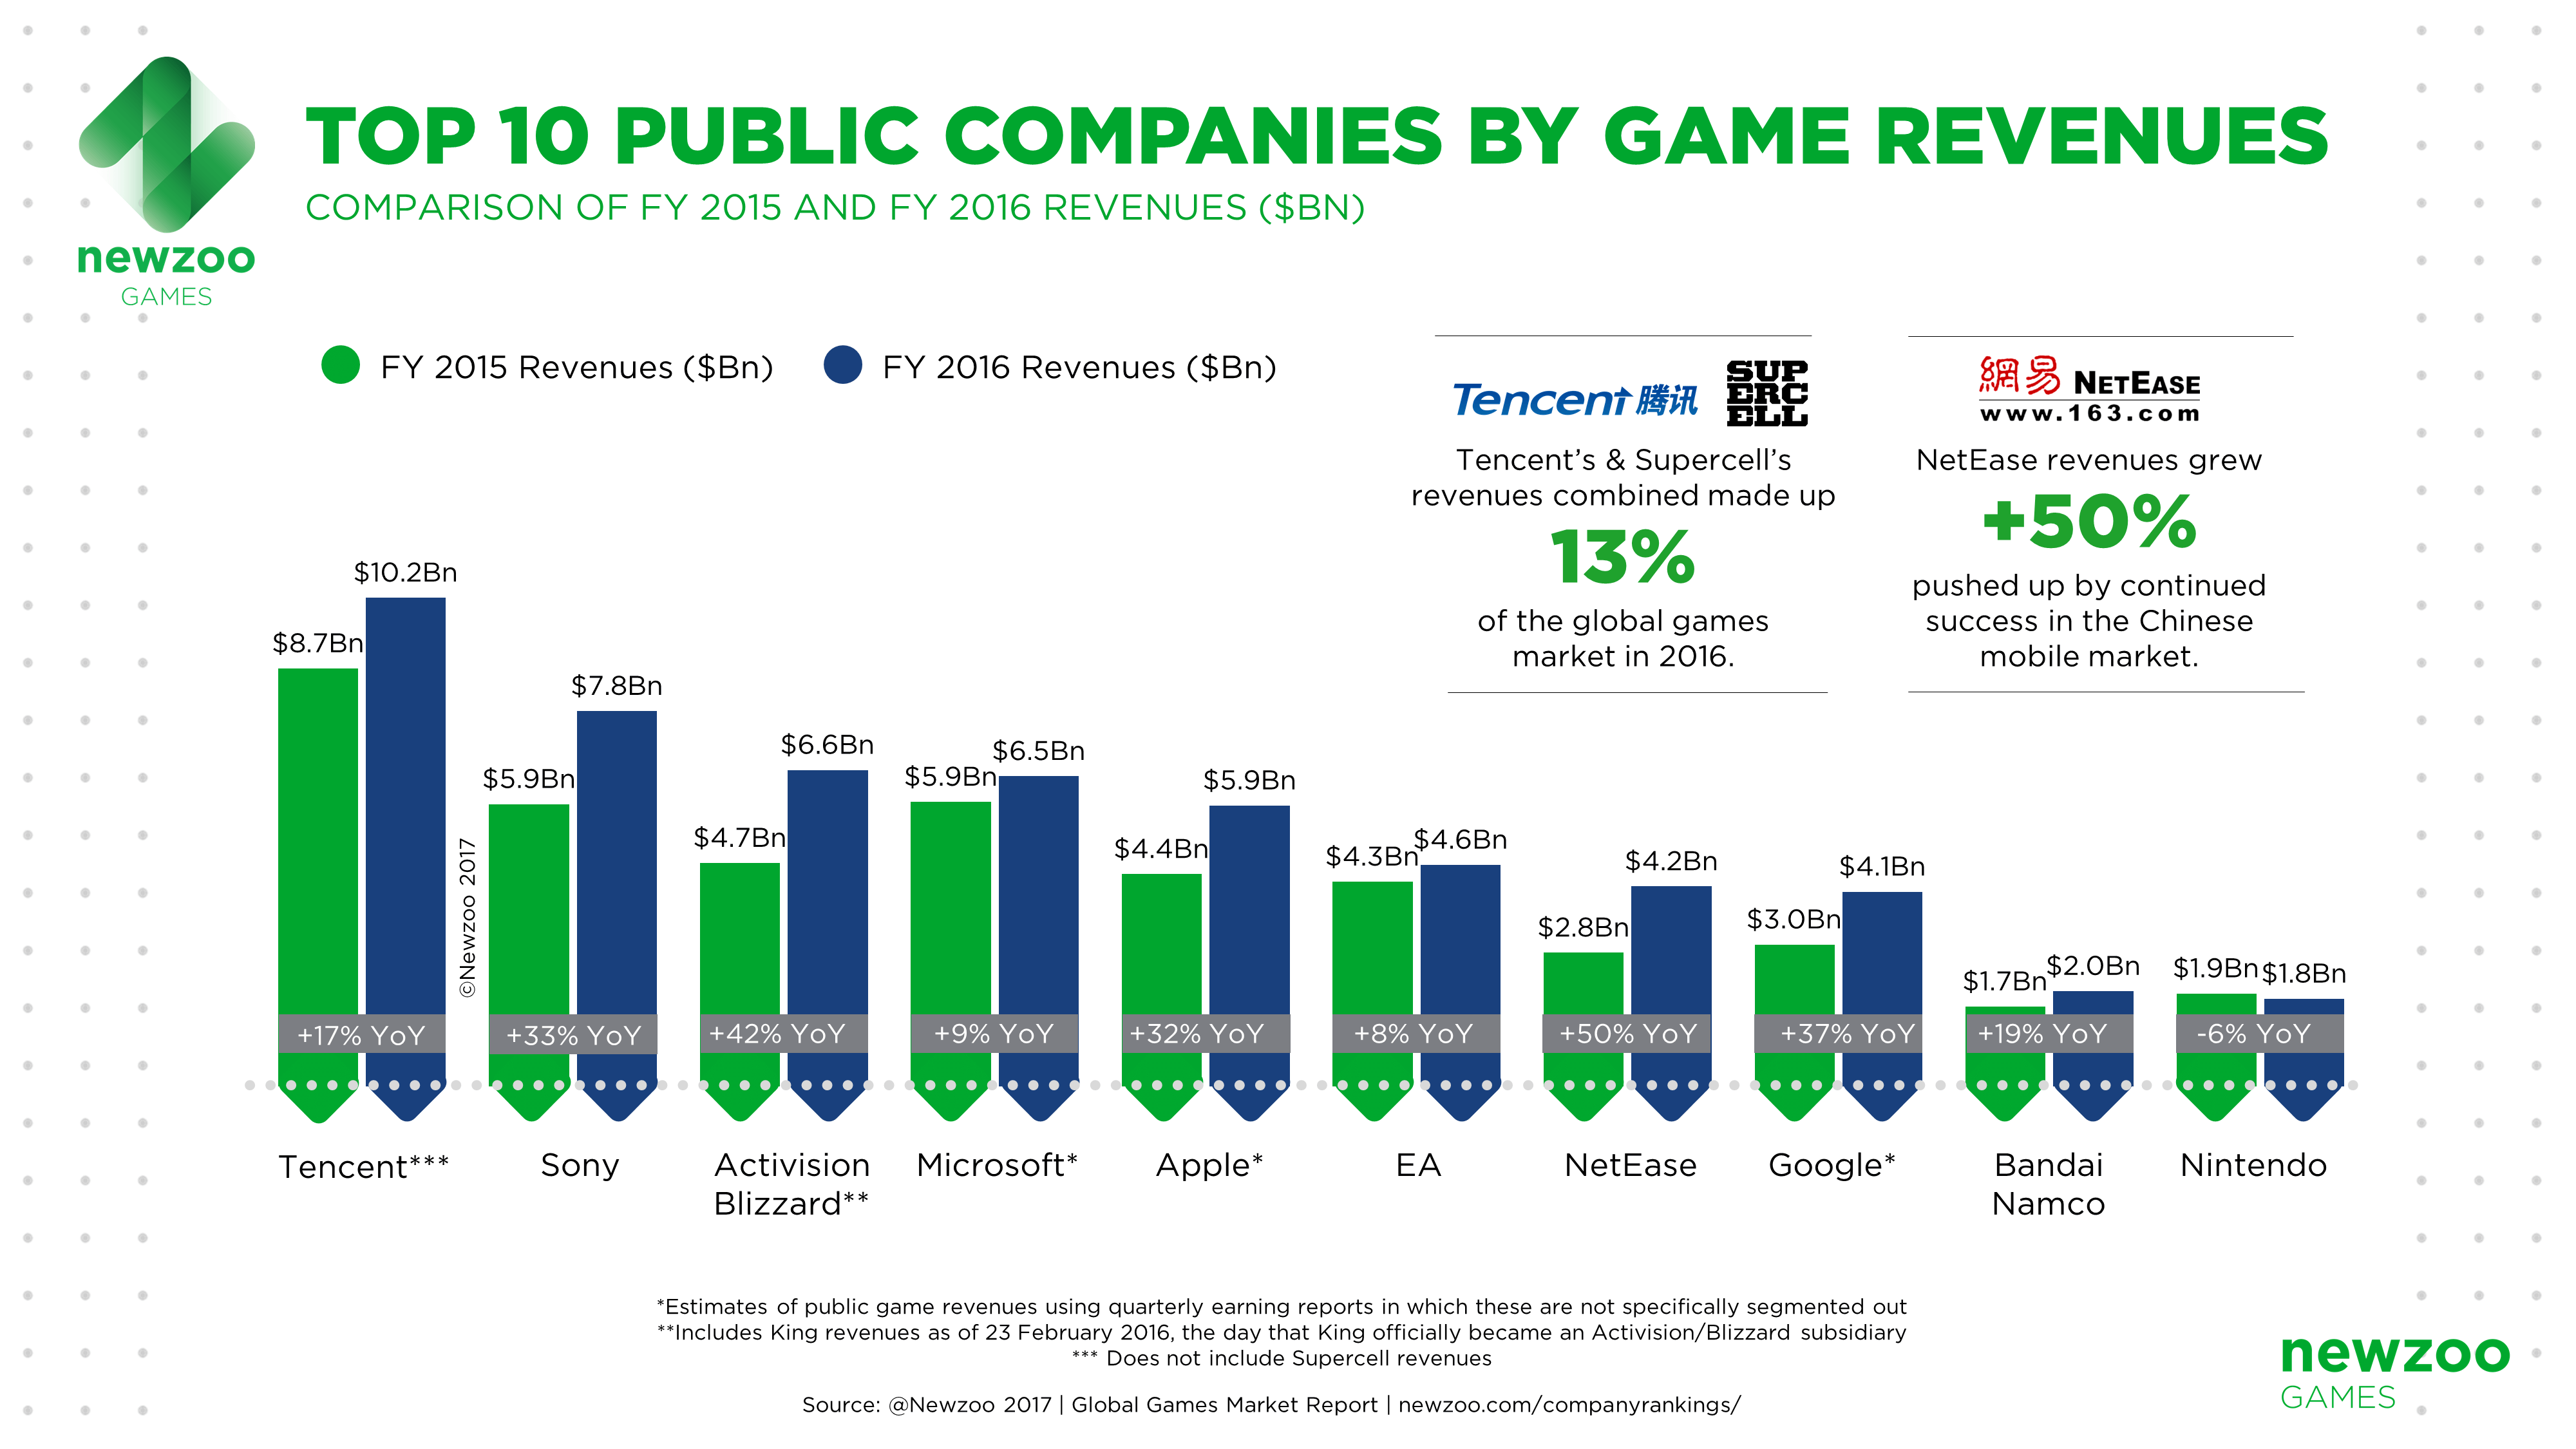 Newzoo_Top_10_Companies_Game_Revenues_FY2016 (1).png